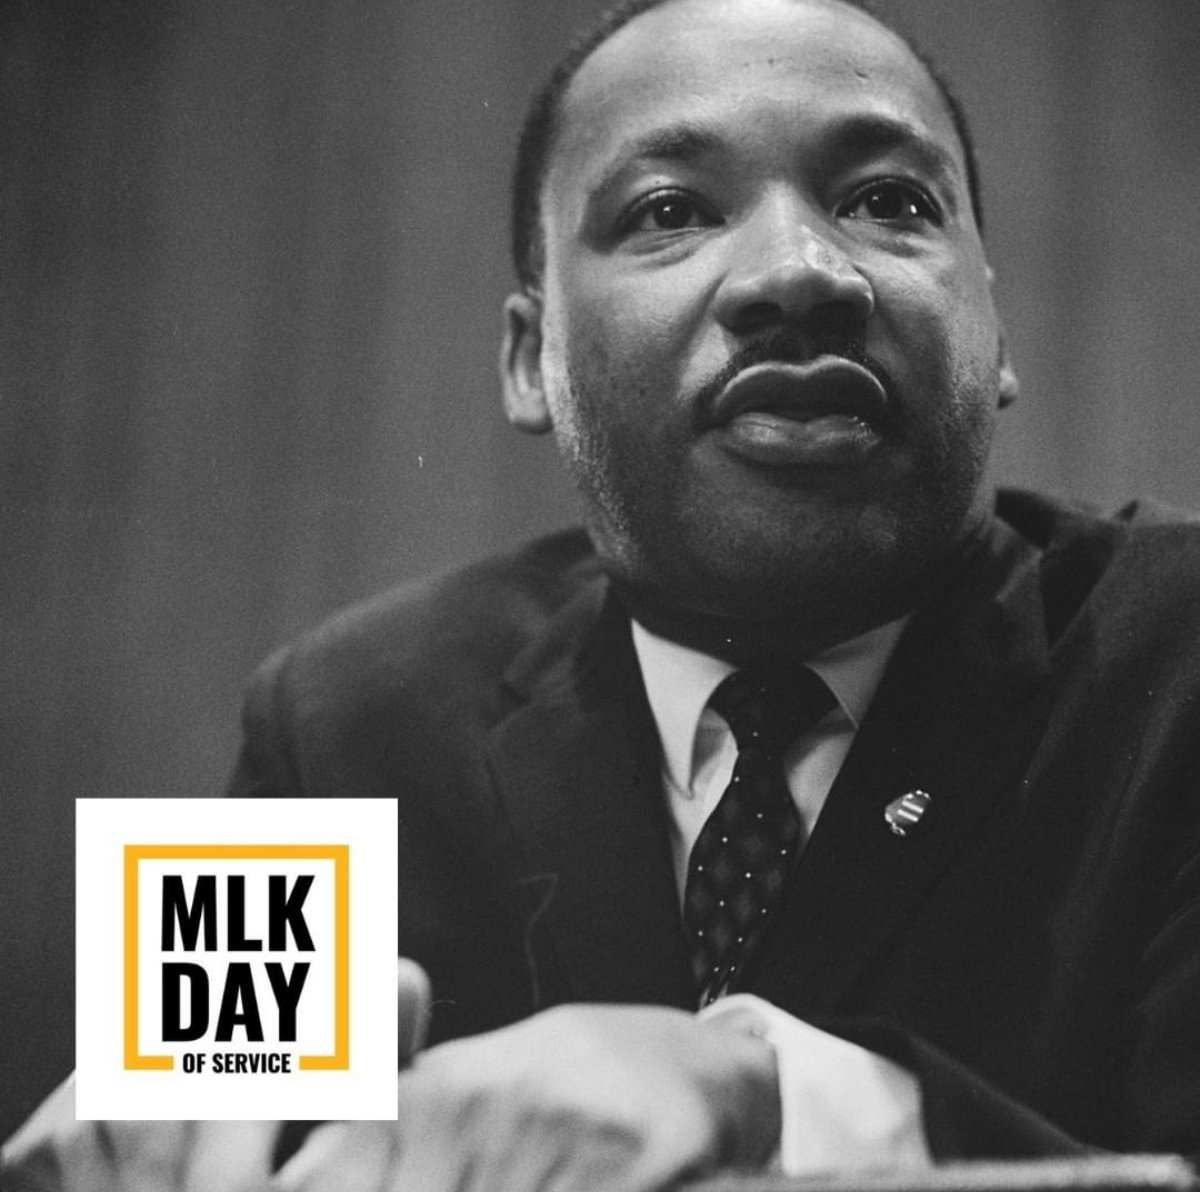 Make today a day ON, not a day off - celebrate #MLKDay by seeing how you can help those in your community who need it most. https://t.co/ep2gTqUkQR https://t.co/PUiR1UNoiU